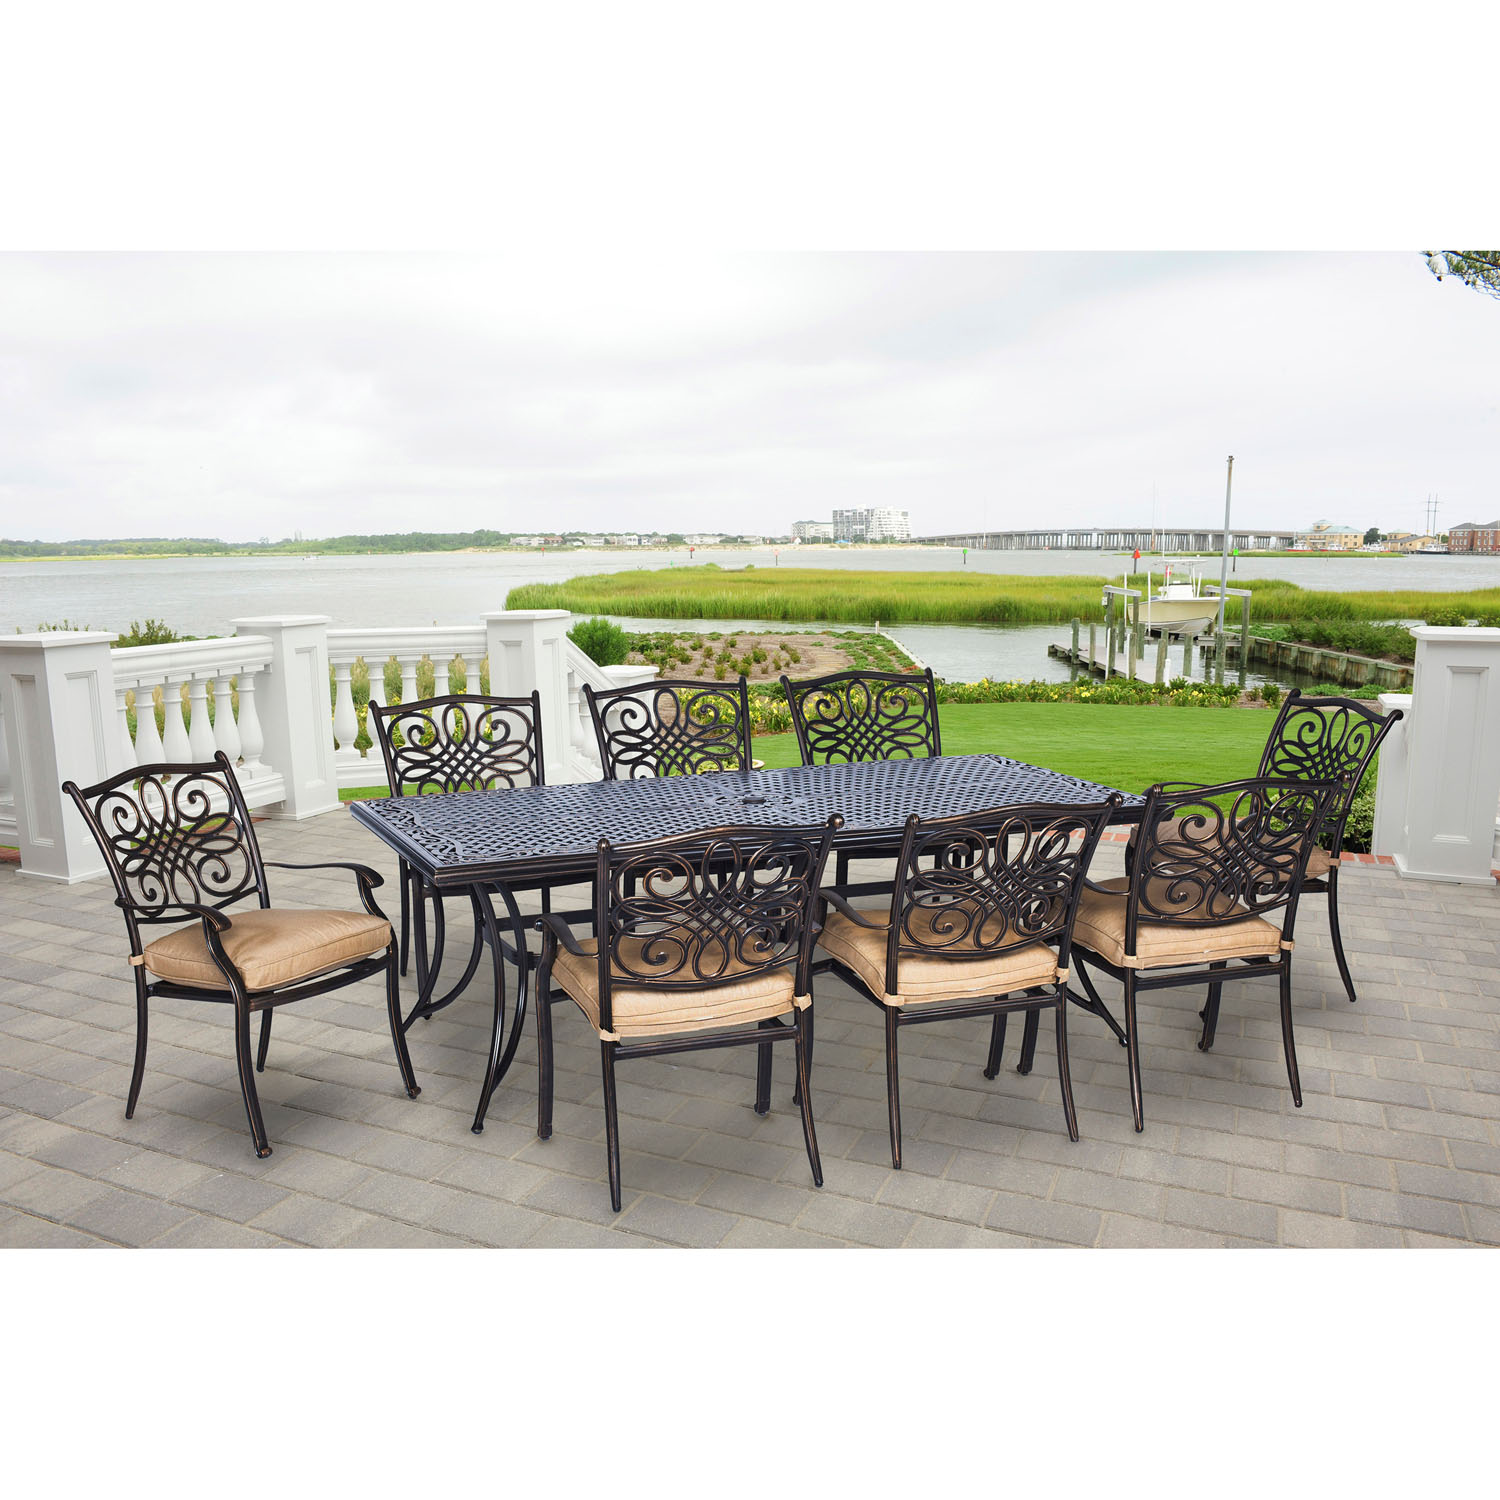 Hanover Traditions 9-Piece Outdoor Dining Set with Extra-Long Table